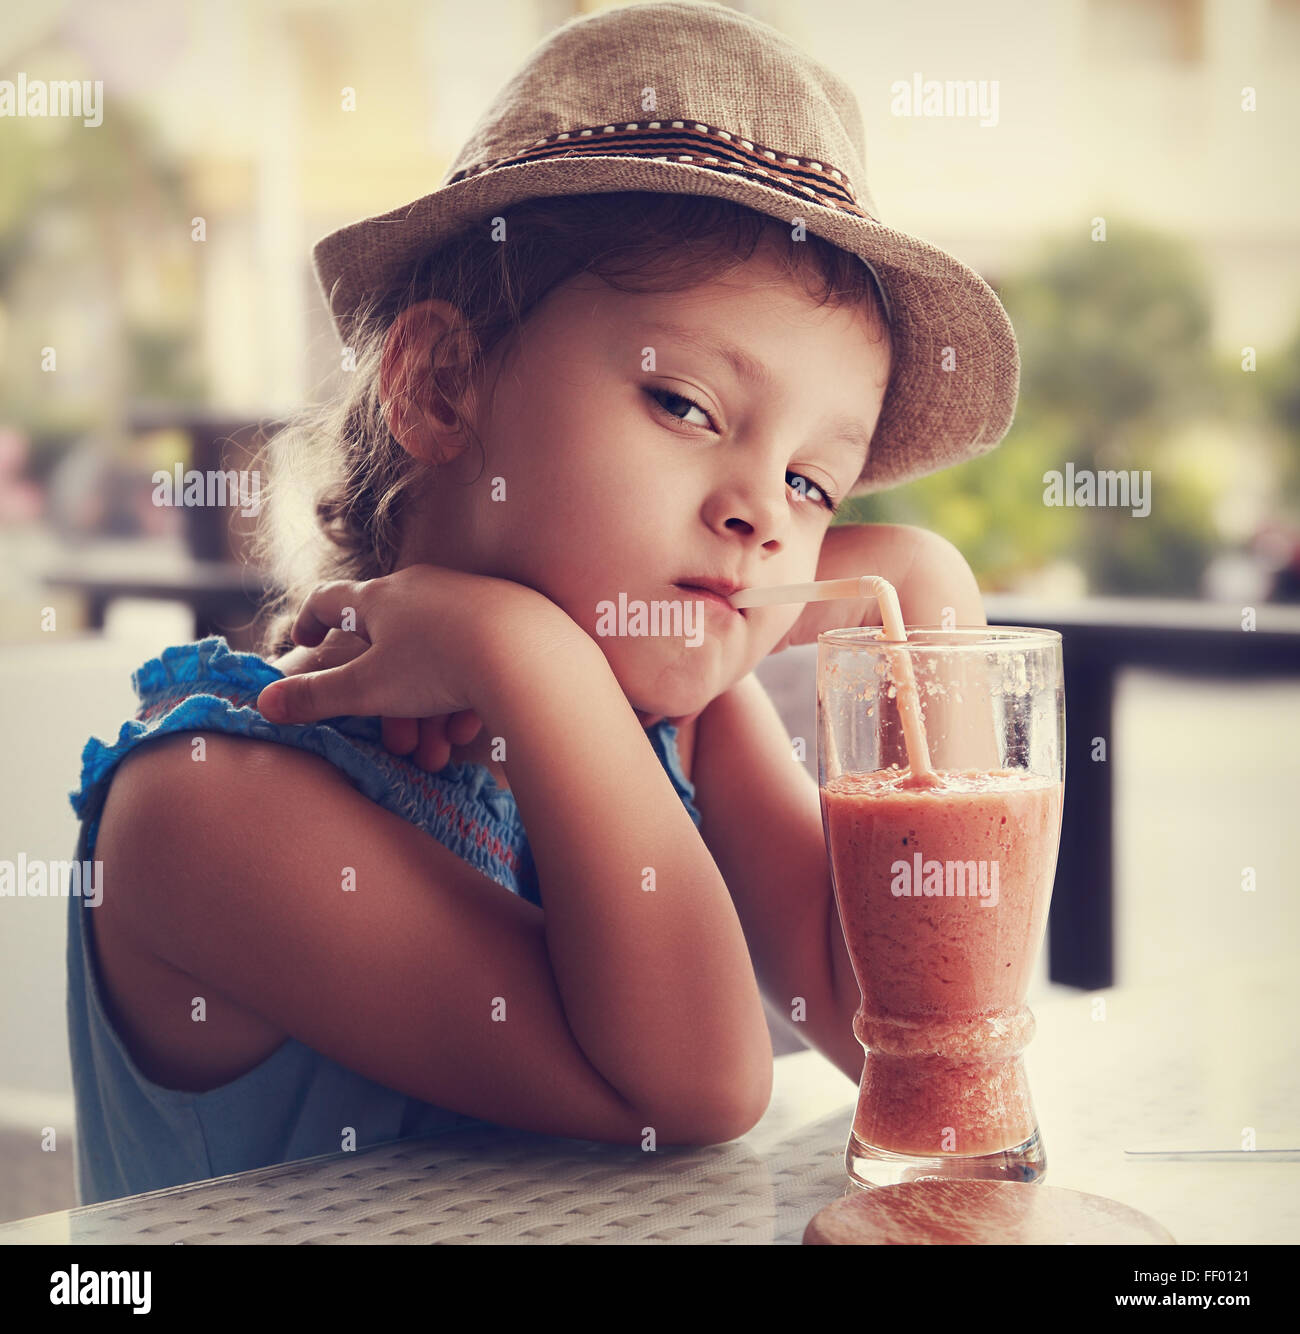 Clever serious kid girl drinking vitamin smoothie juice in street cafe and looking. Toned closeup portrait - Stock Image